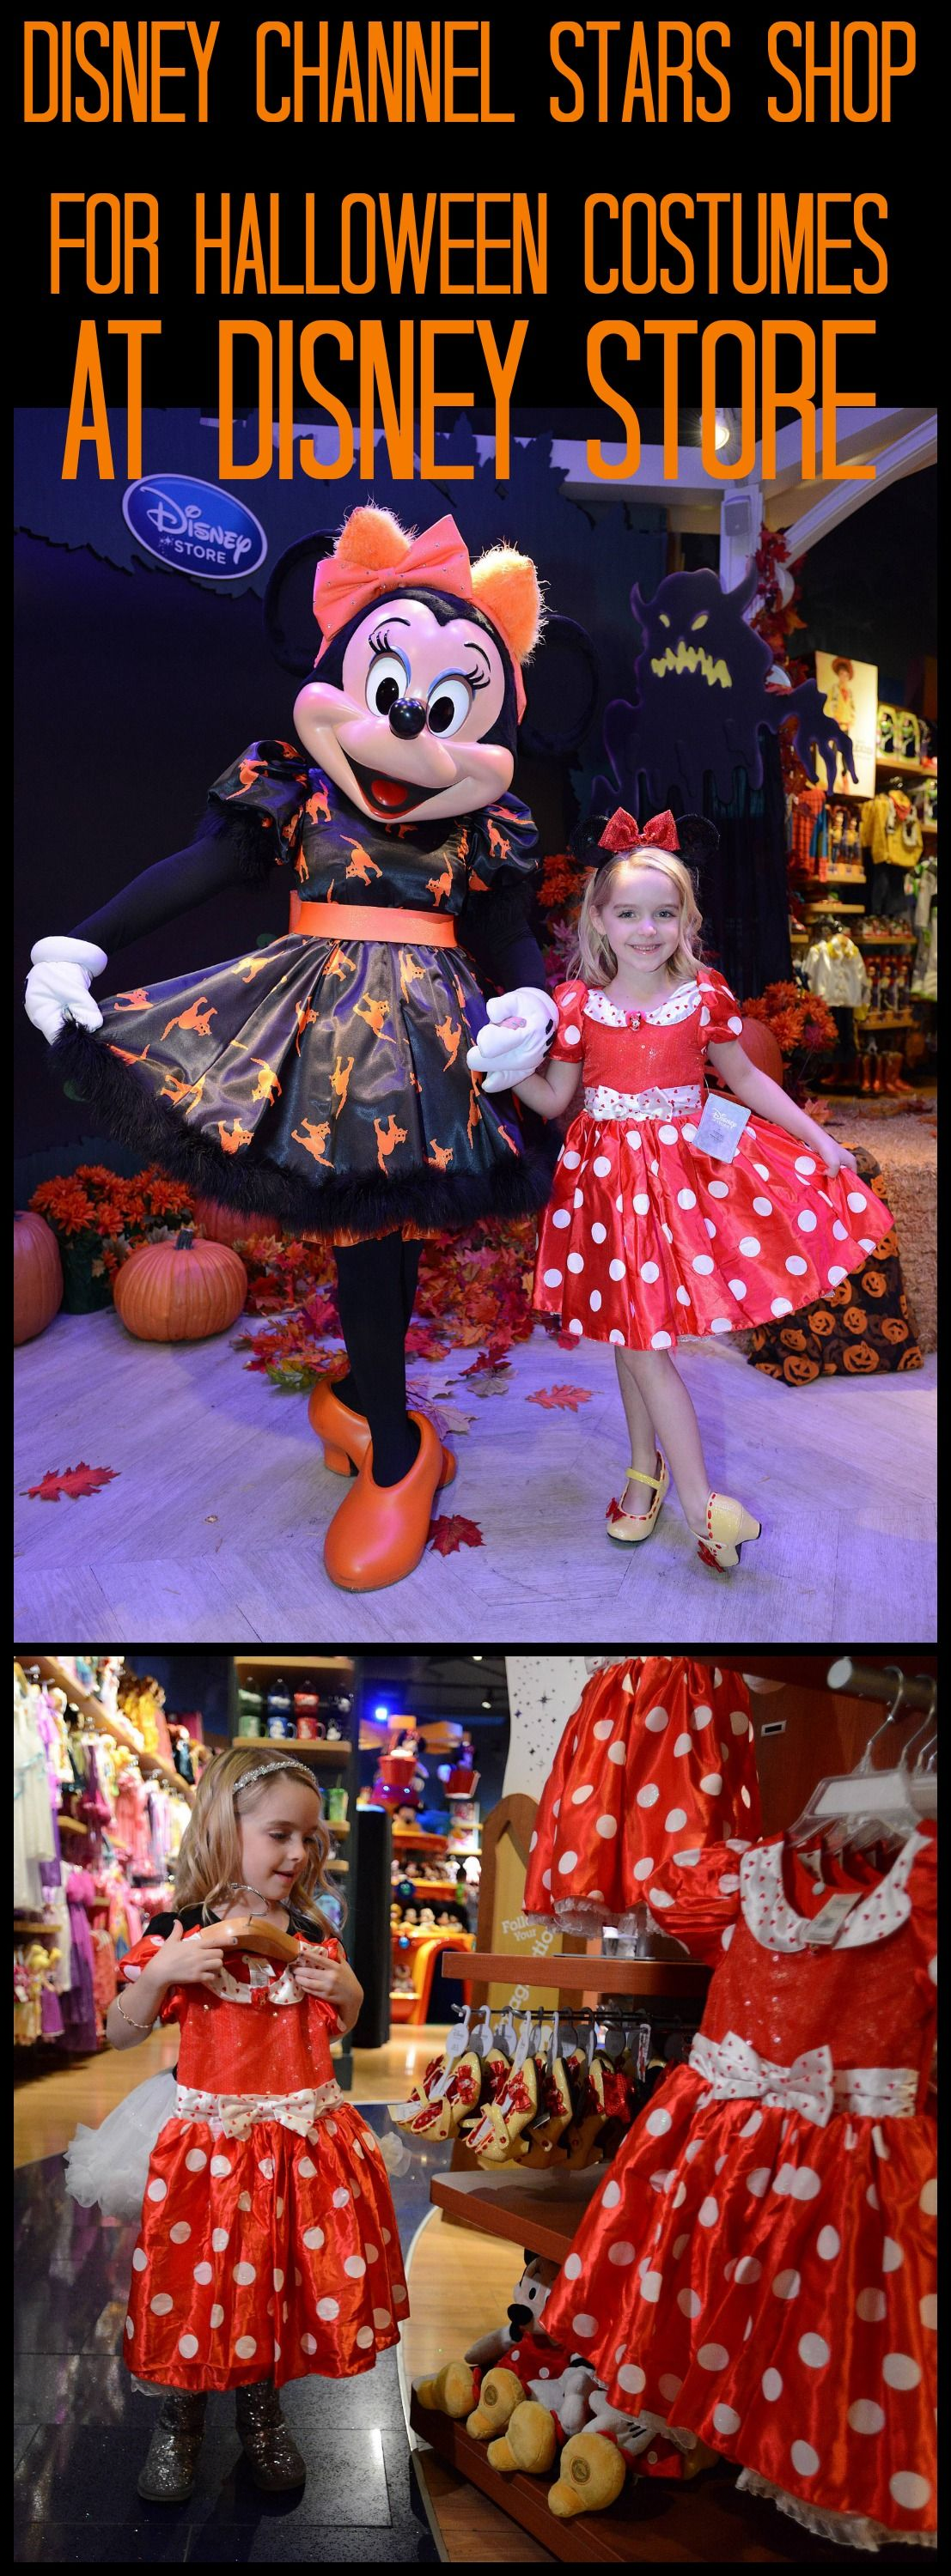 Disney Store's Halloween Costume BOOtique Goes Hollywood